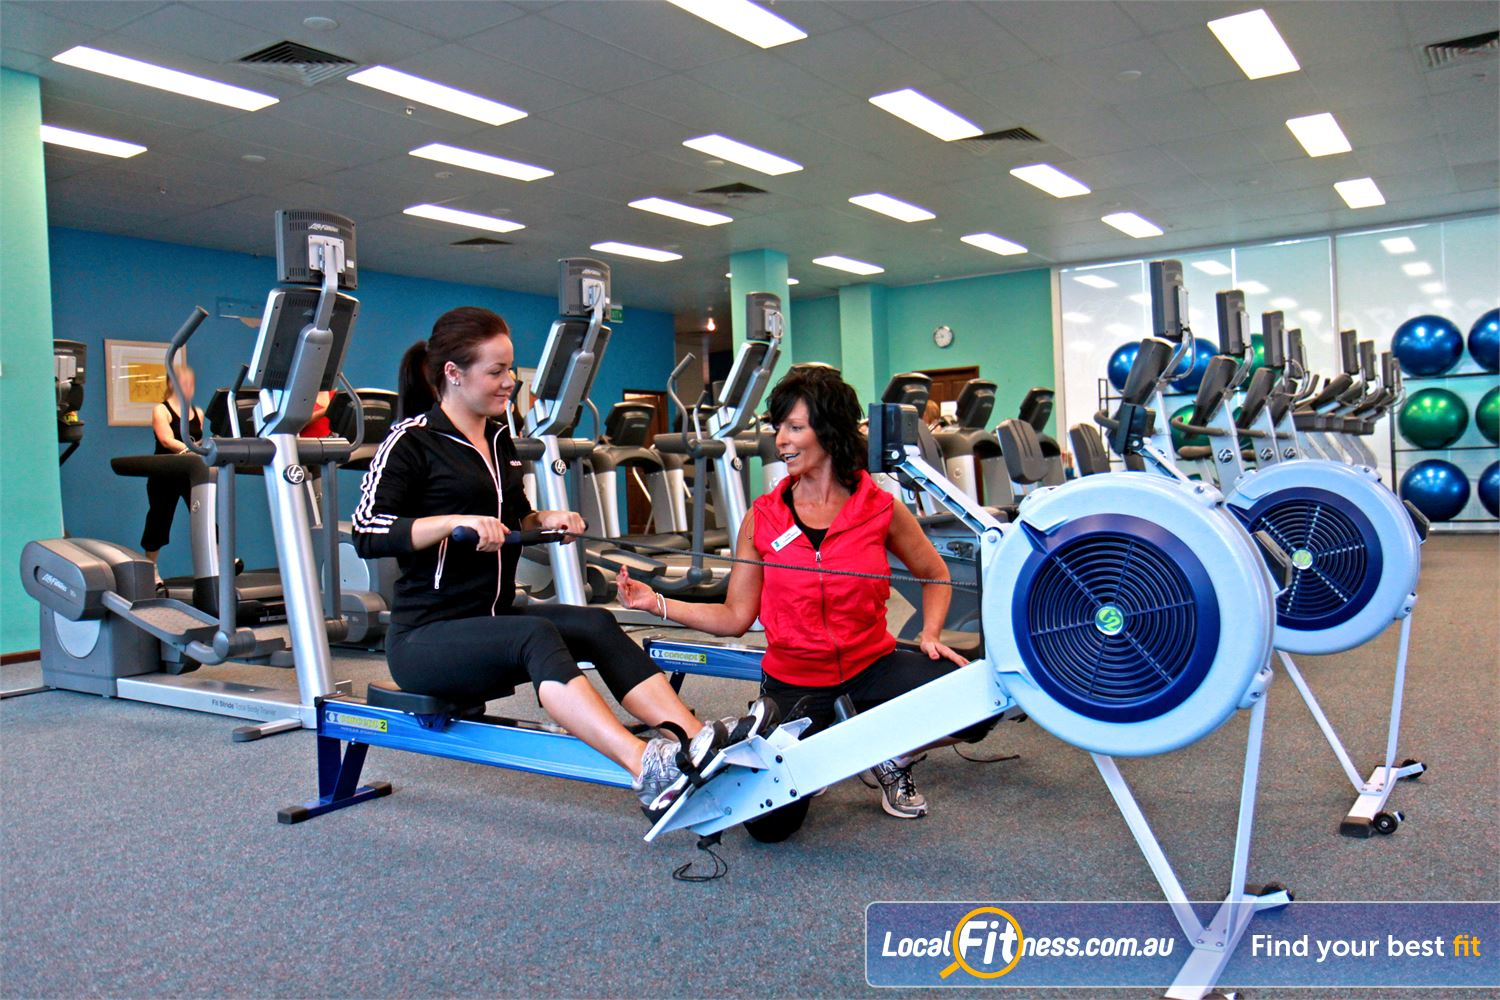 Fernwood Fitness Gungahlin Vary your workout with our HUGE range of cardio, including indoor rowing and more.